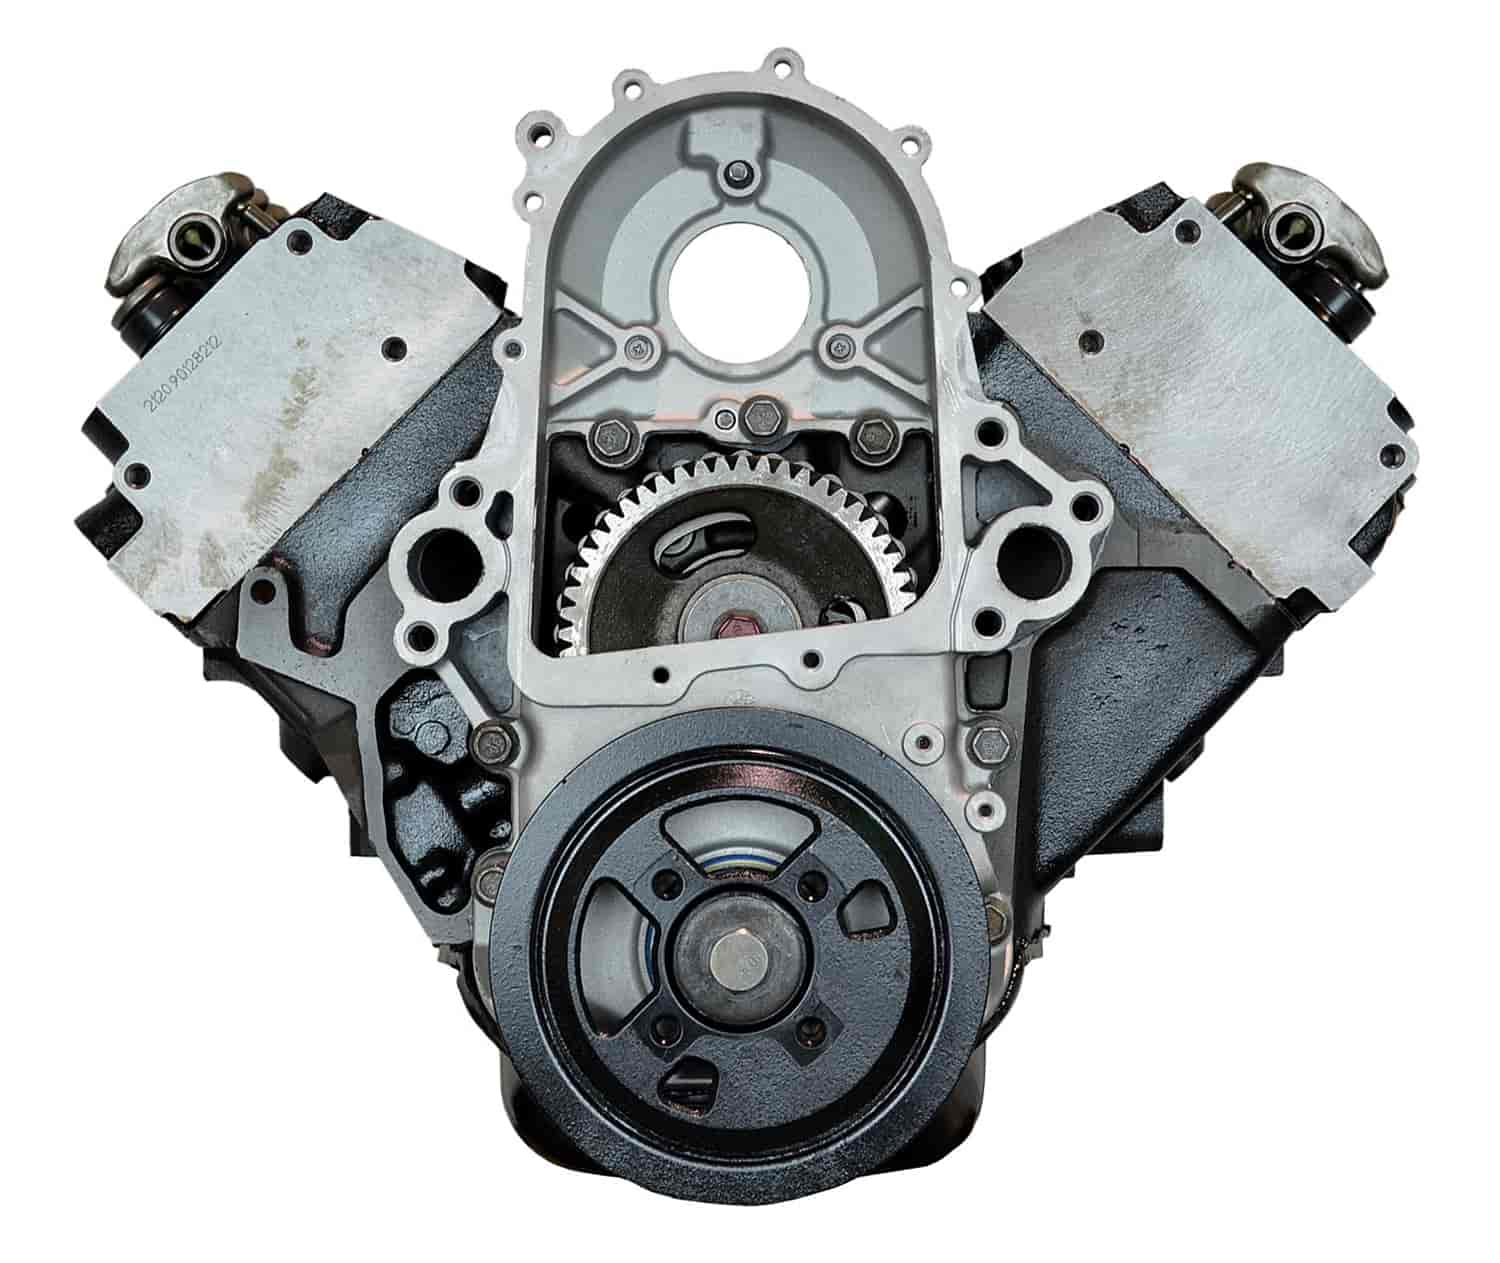 ATK Engines DCU5: Remanufactured Crate Engine For 1996